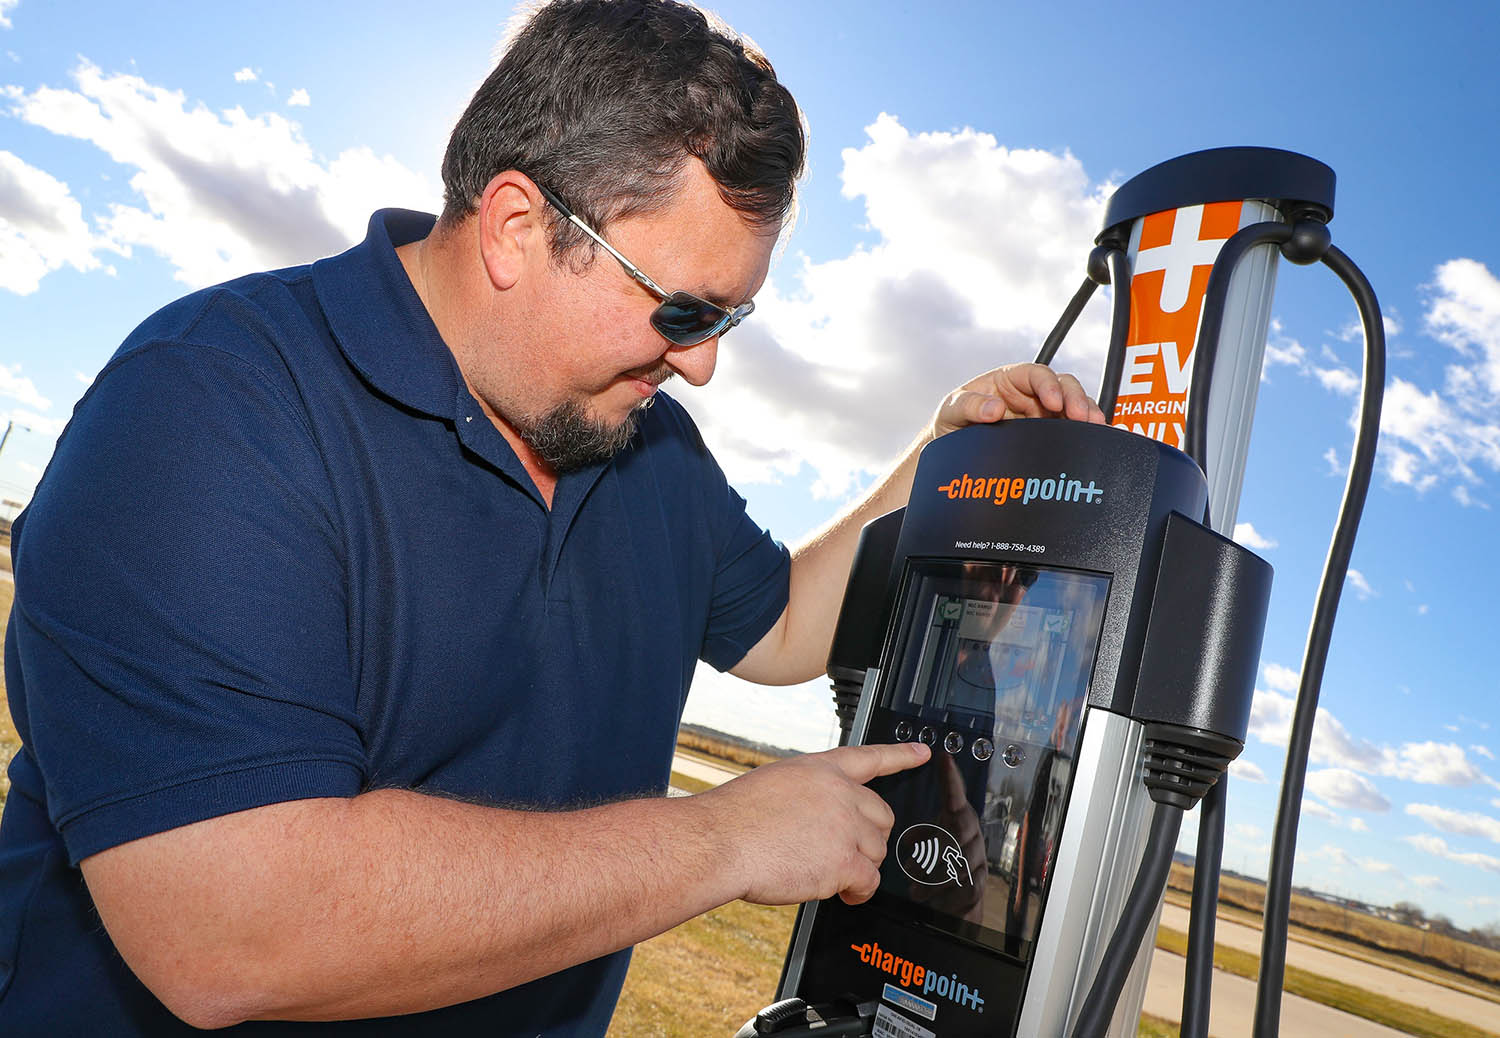 Consumer safety manager Marshall Barth demonstrates the electric vehicle charging station recently installed at the Nebraska Safety Center's driving range. The charging station is available for public use.